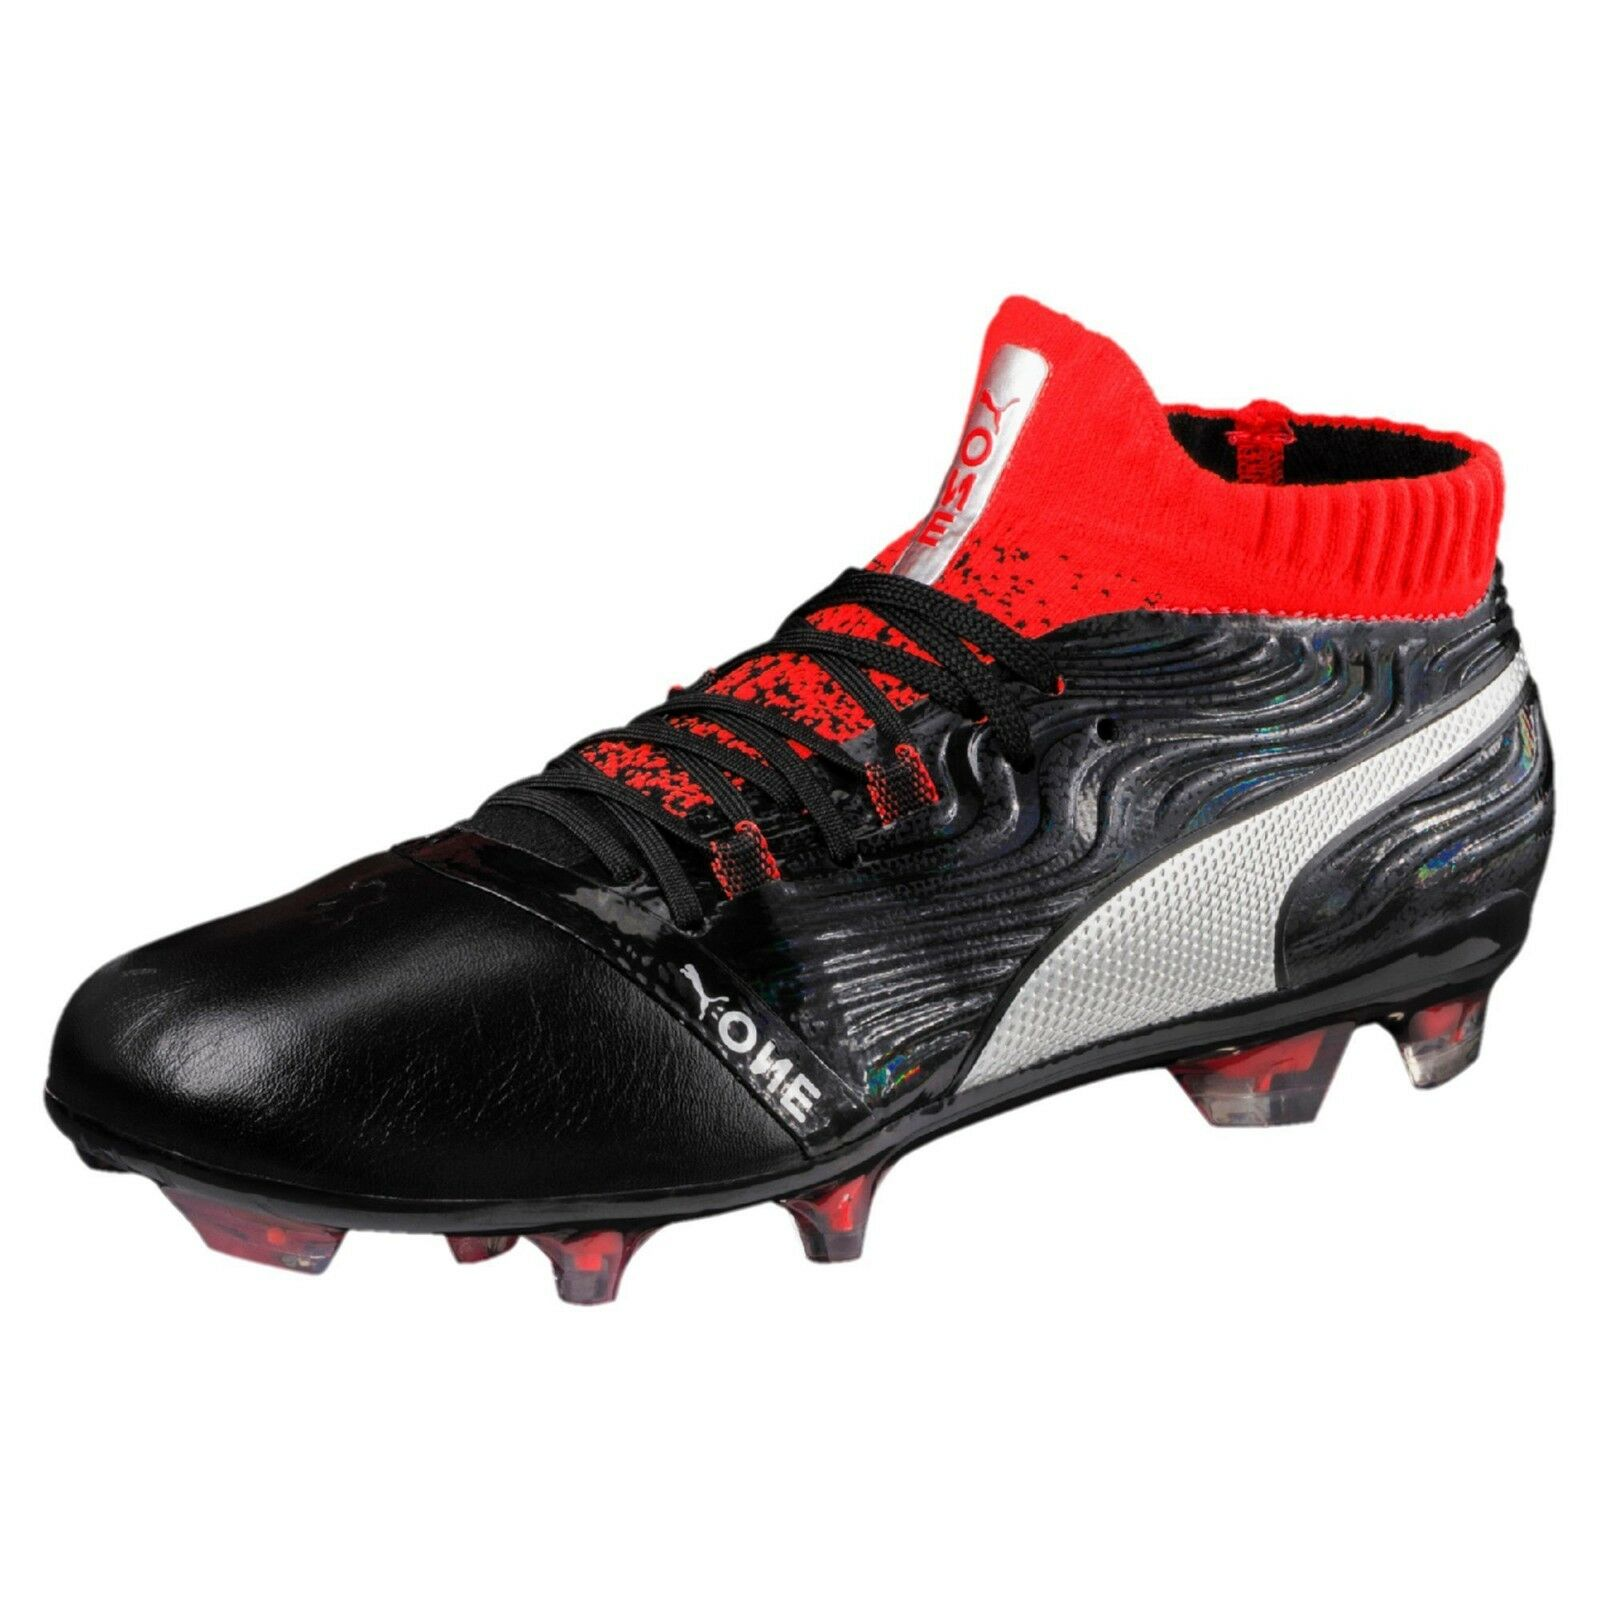 Puma One 18.1 Men's FG Soccer Cleats Football Football Football shoes Black Red Silver (BRAND NEW) 40e00c